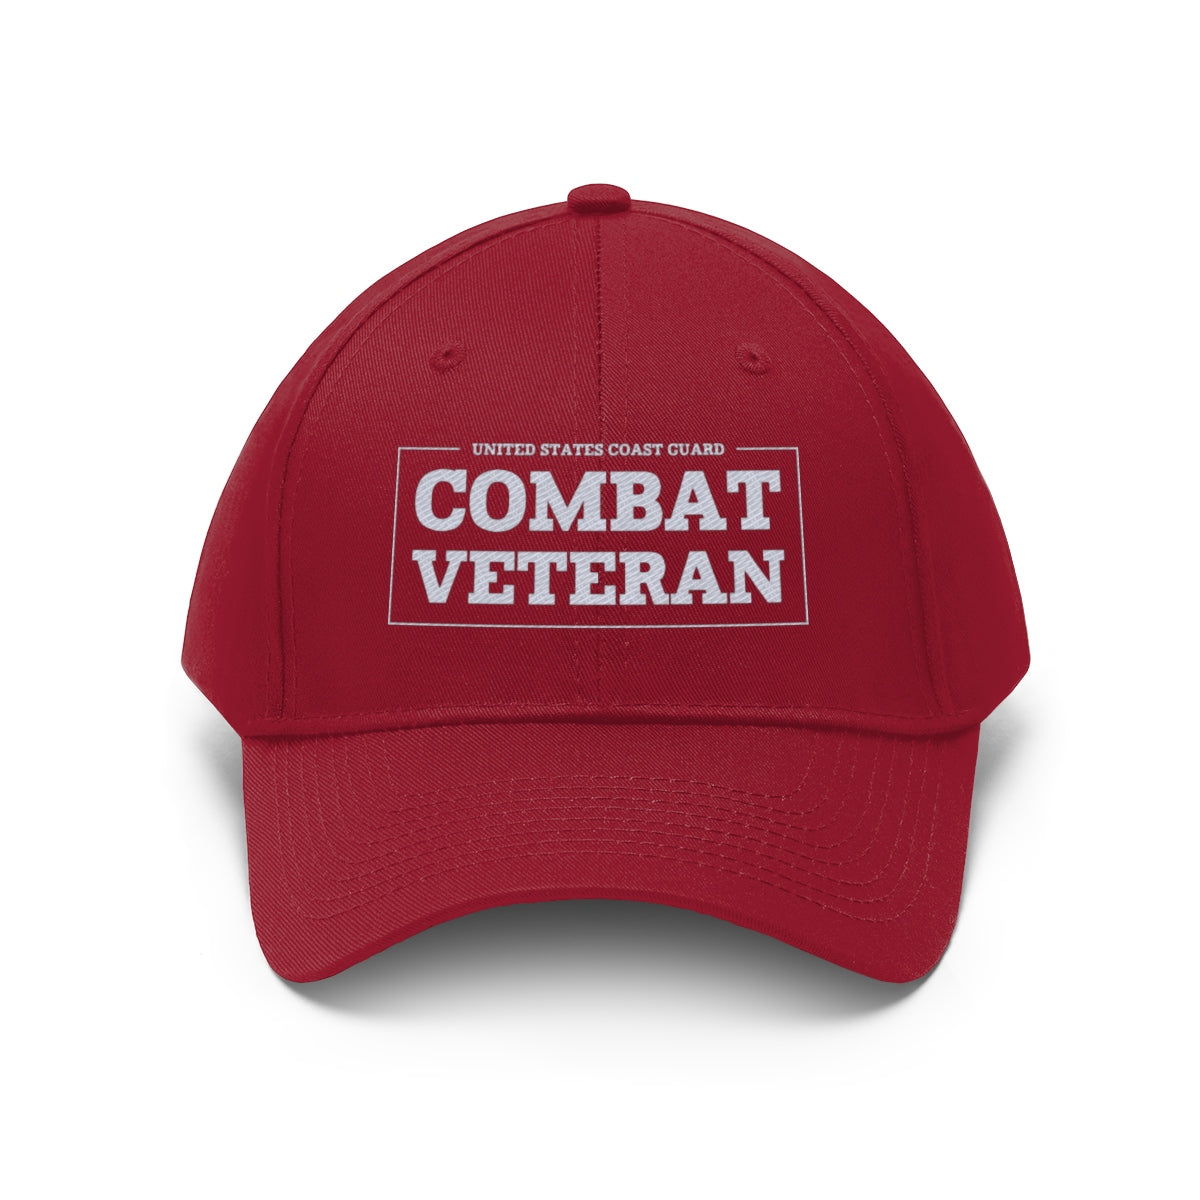 United States Coast Guard Combat Veteran Twill Hat